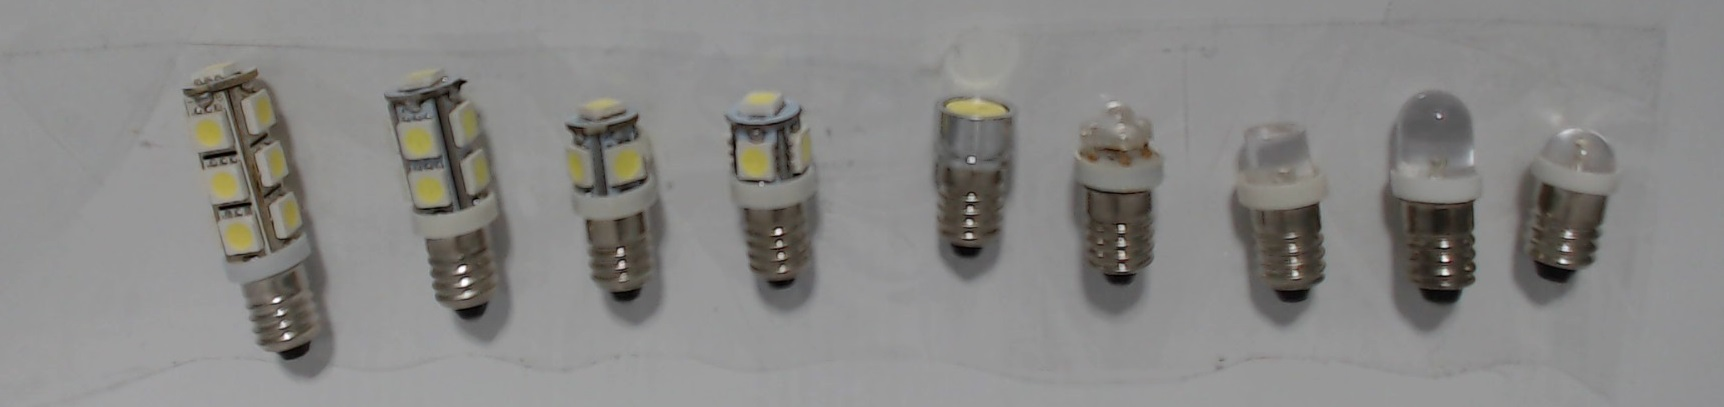 Miniature Bulbs E10 Base LED Lights and Lamps